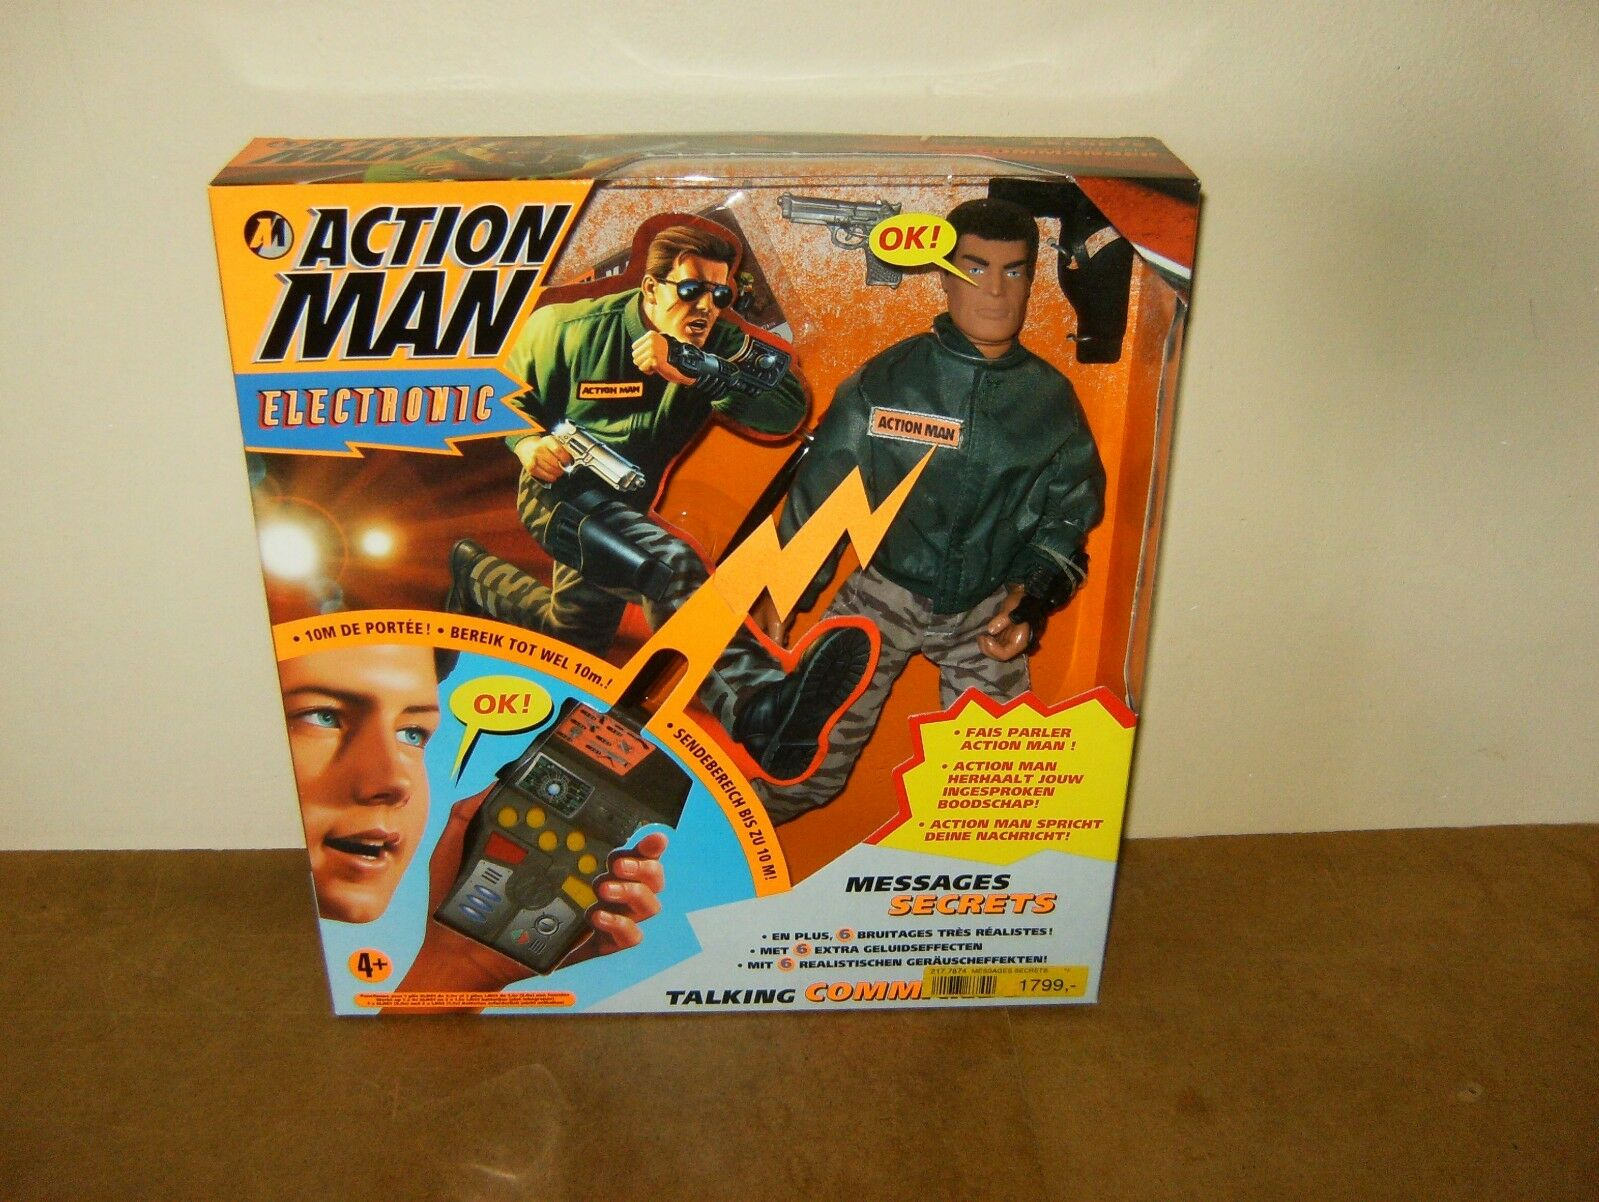 Modern ACTION MAN mam HASBRO - MESSAGES SECRETS   TALKING street COMMANDER -MISB